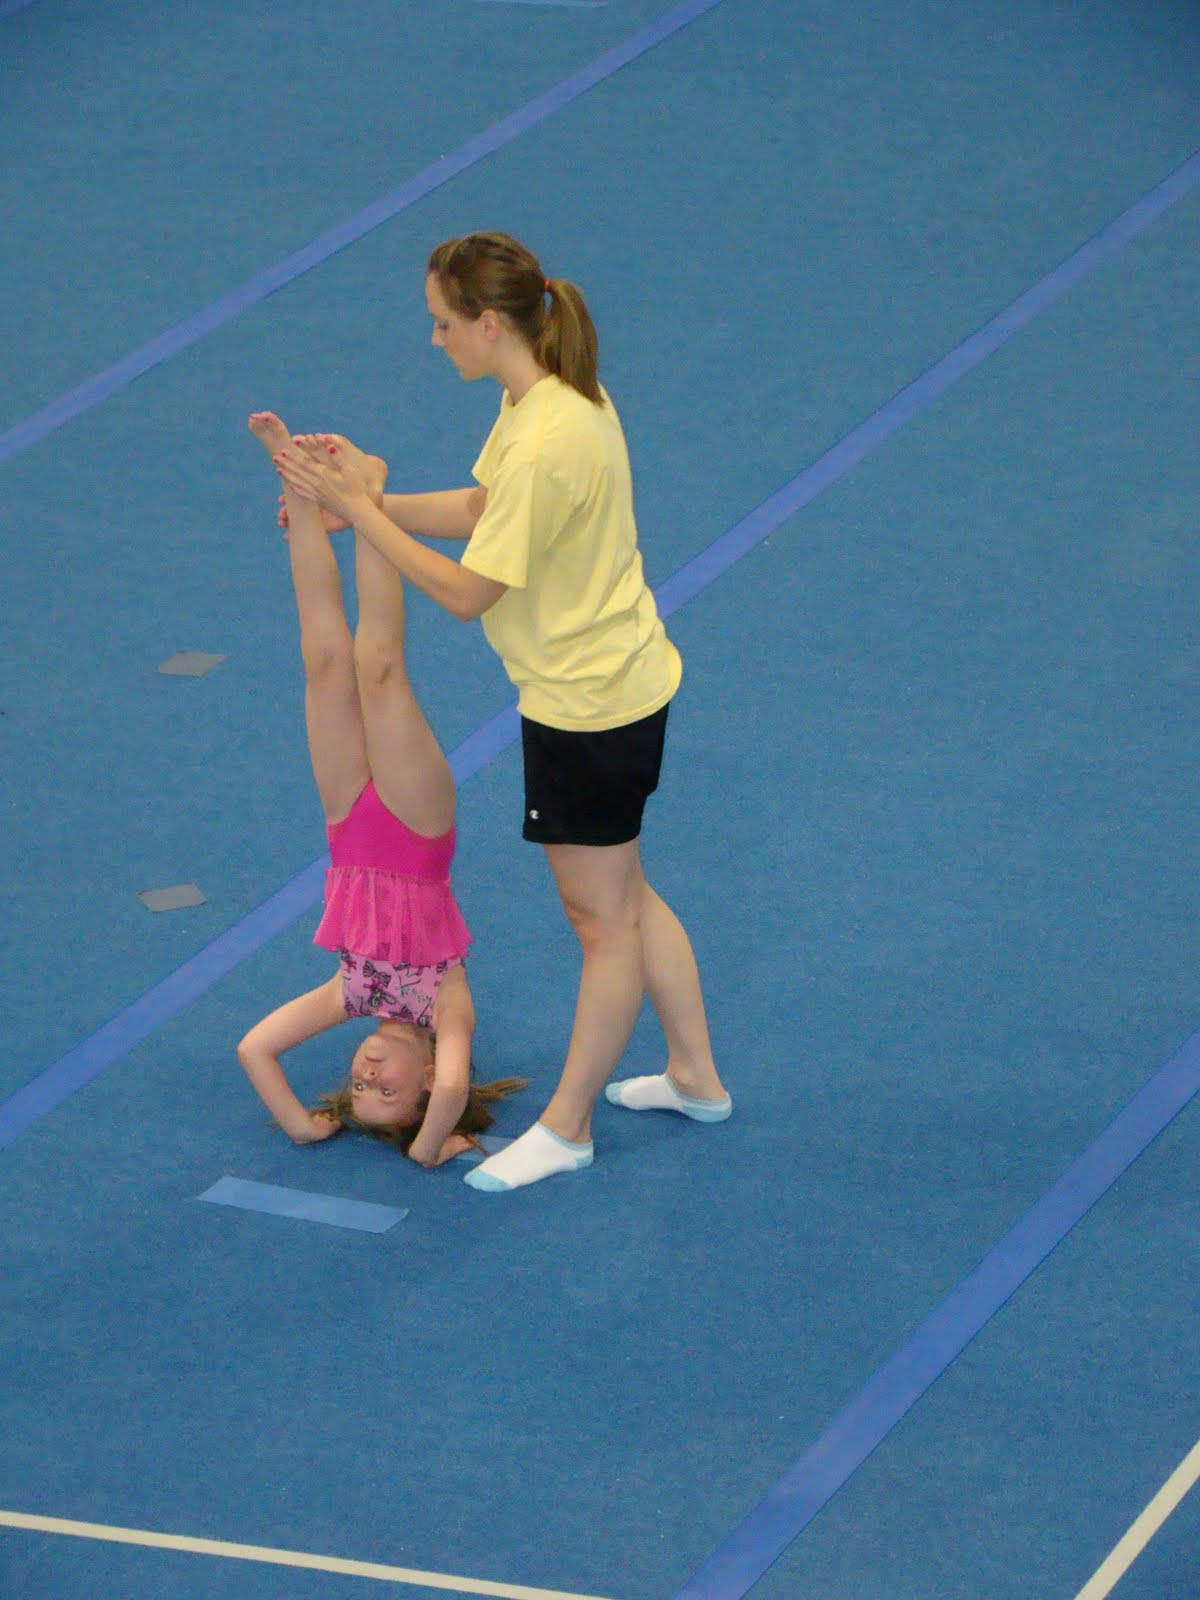 The Right Perspective: Gymnastics